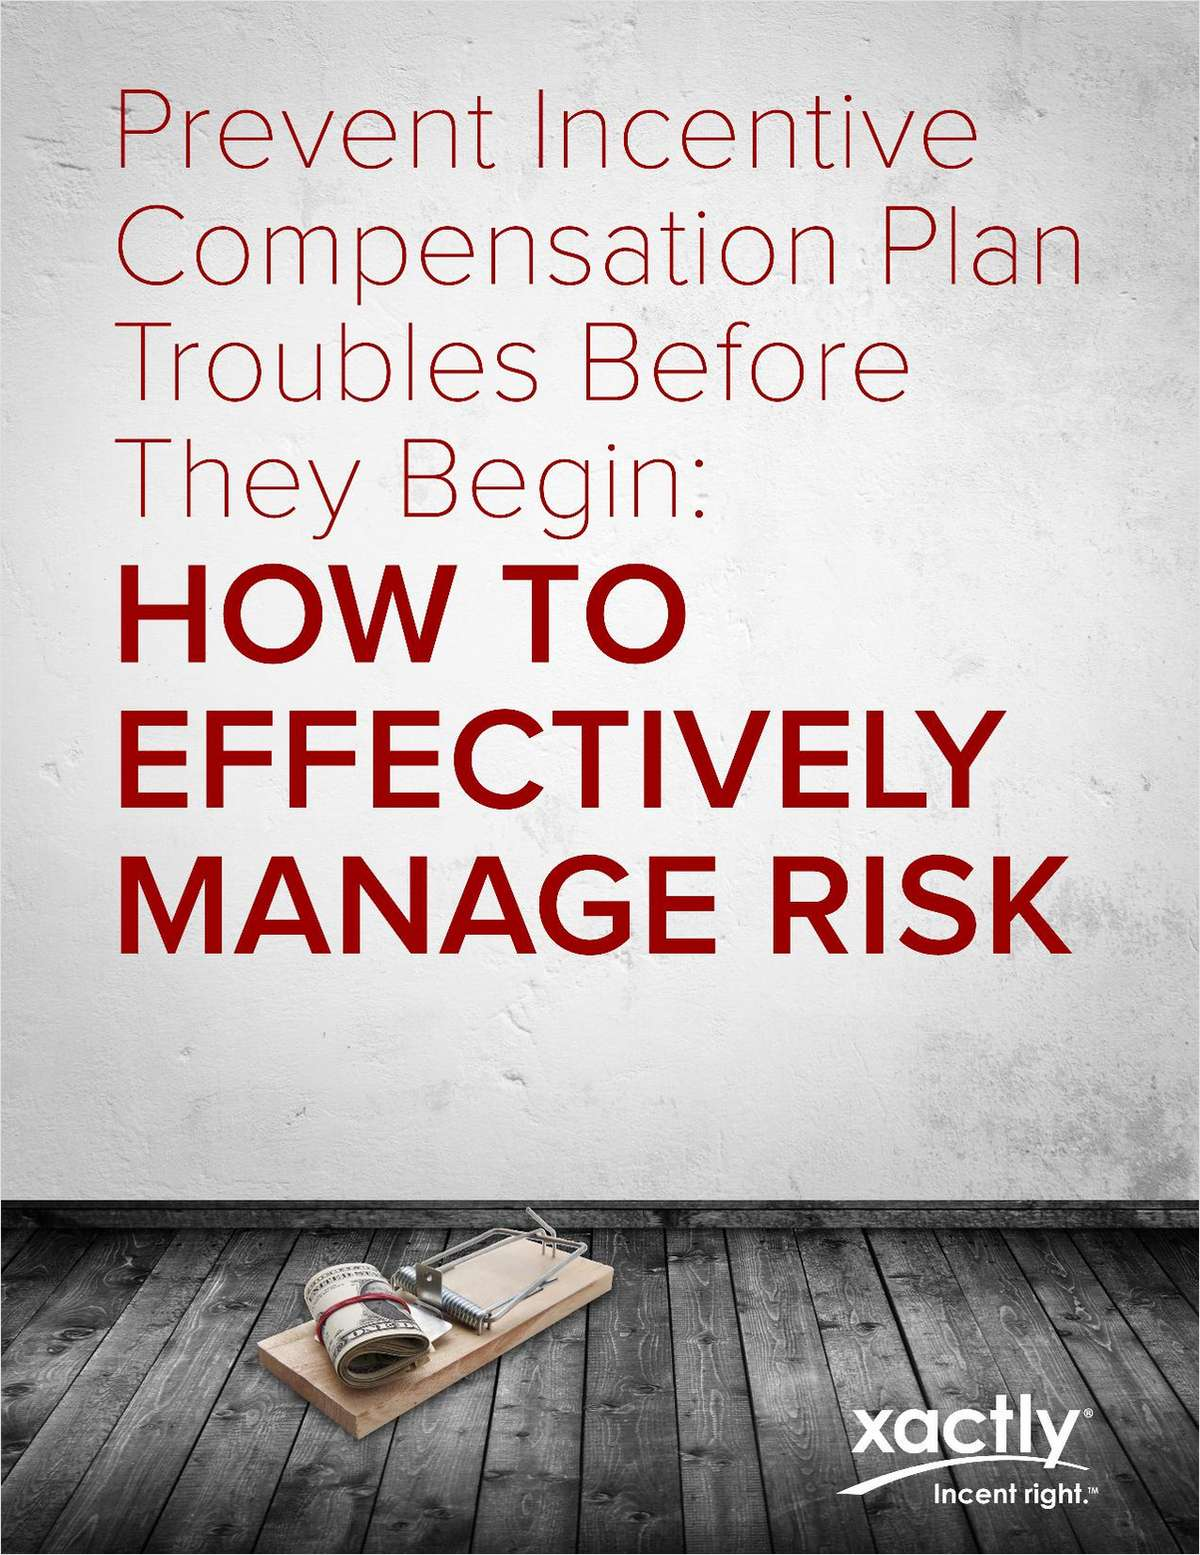 Prevent Incentive Compensation Troubles Before They Begin